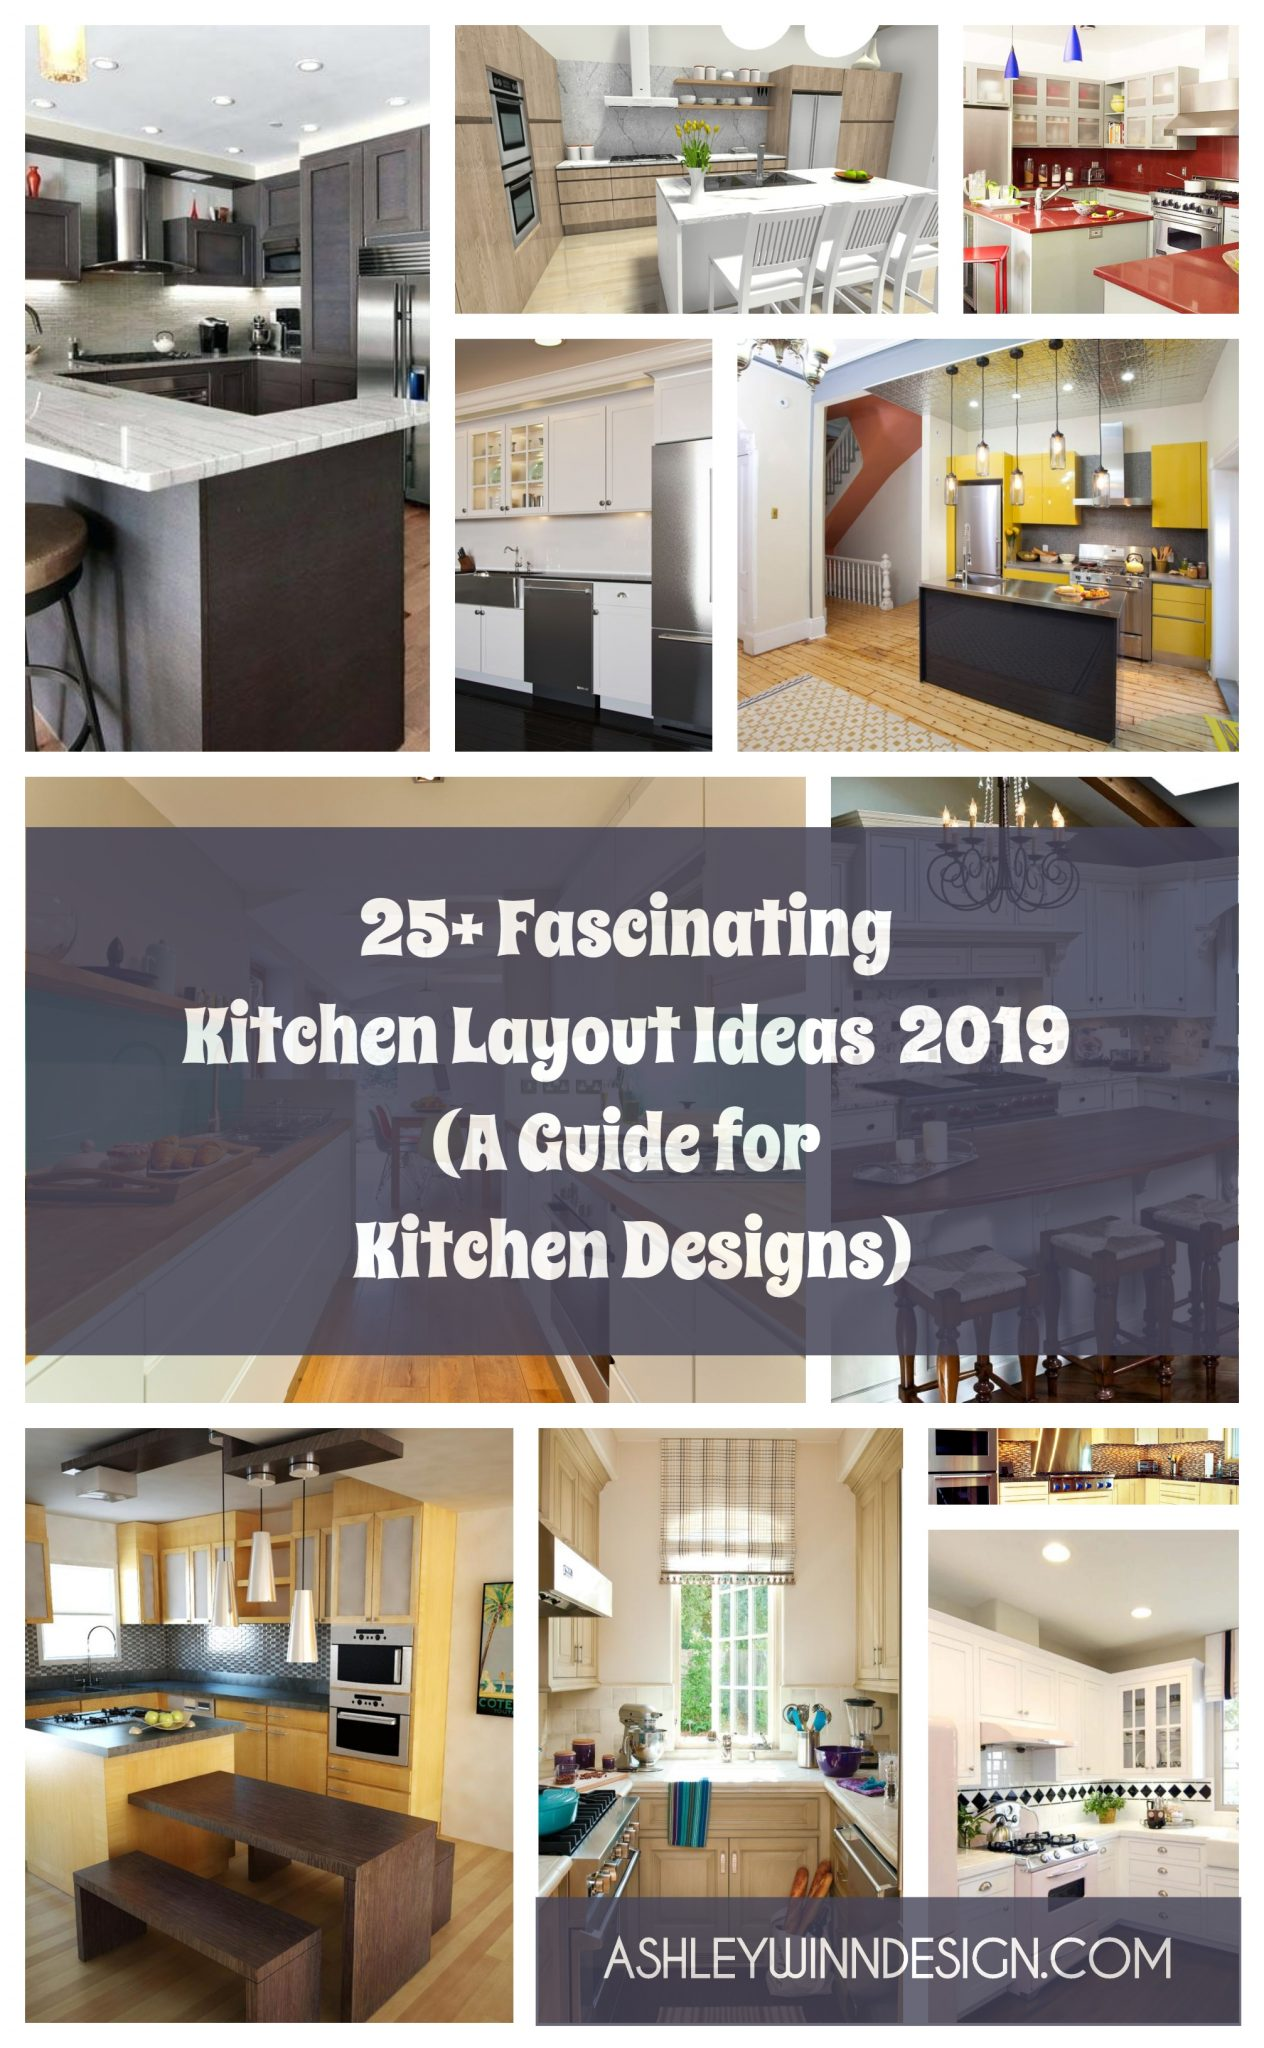 design new kitchen layout facets 25 fascinating ideas 2019 a guide for designs 27